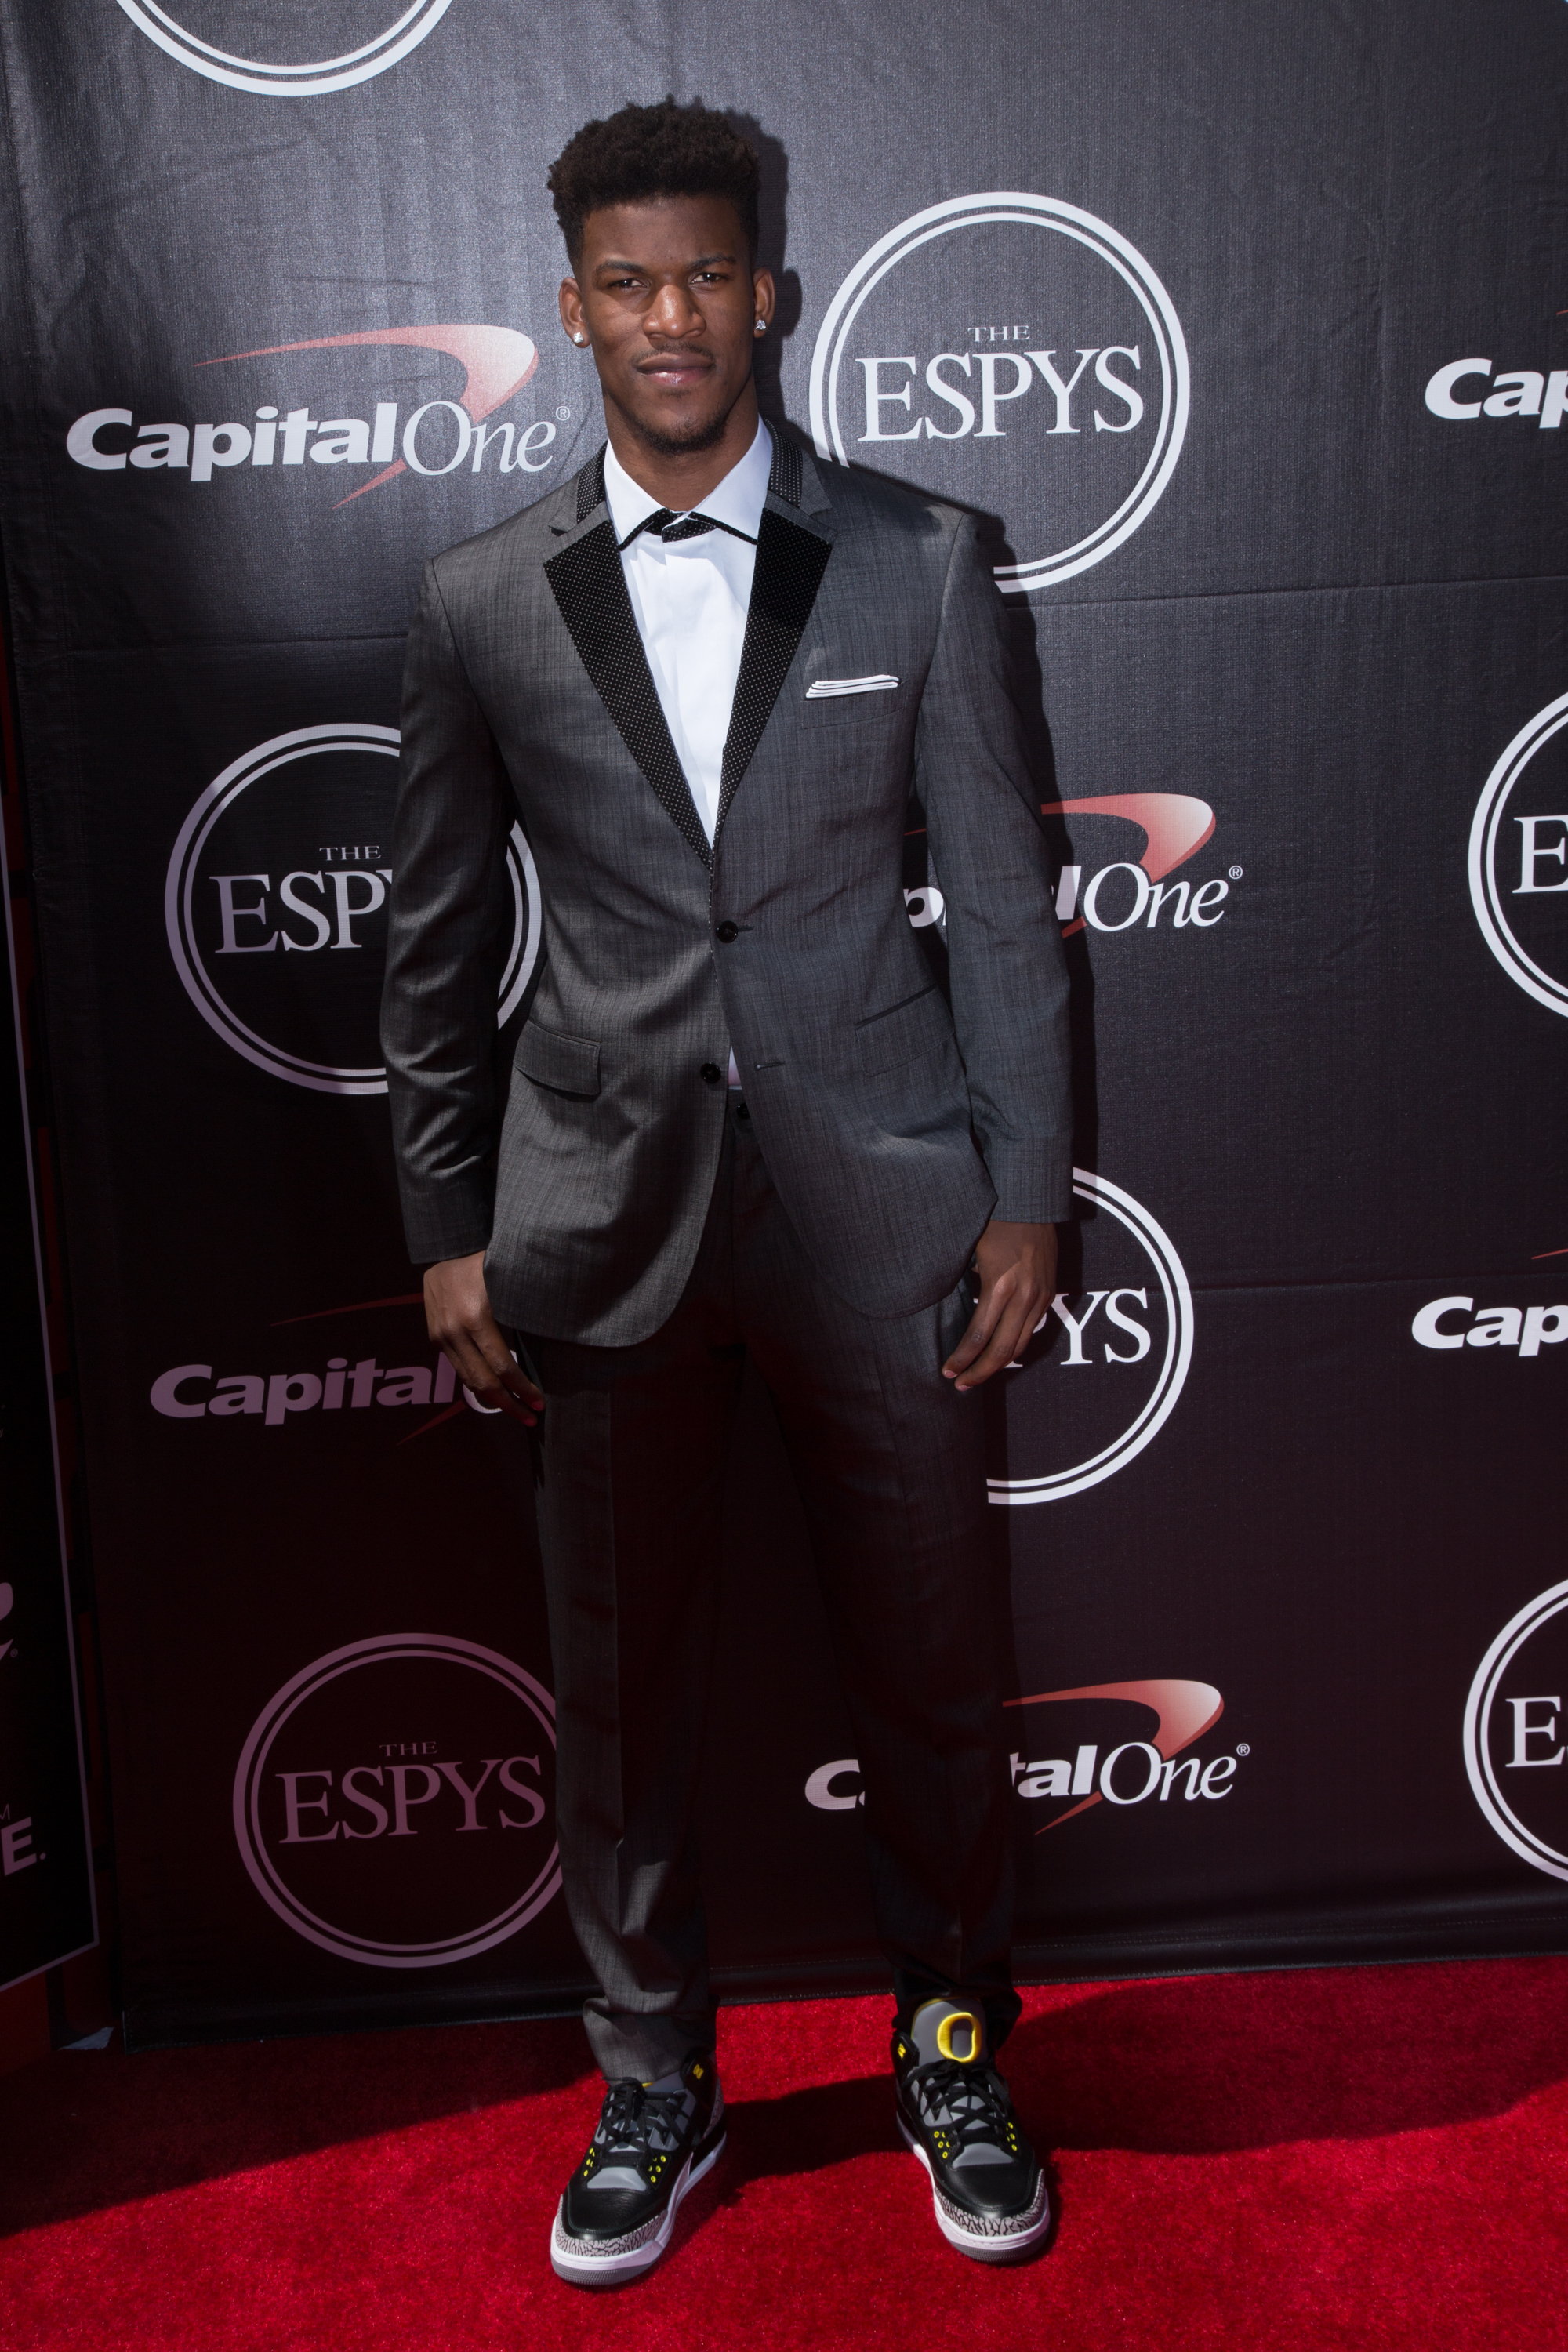 The 2015 ESPY Awards